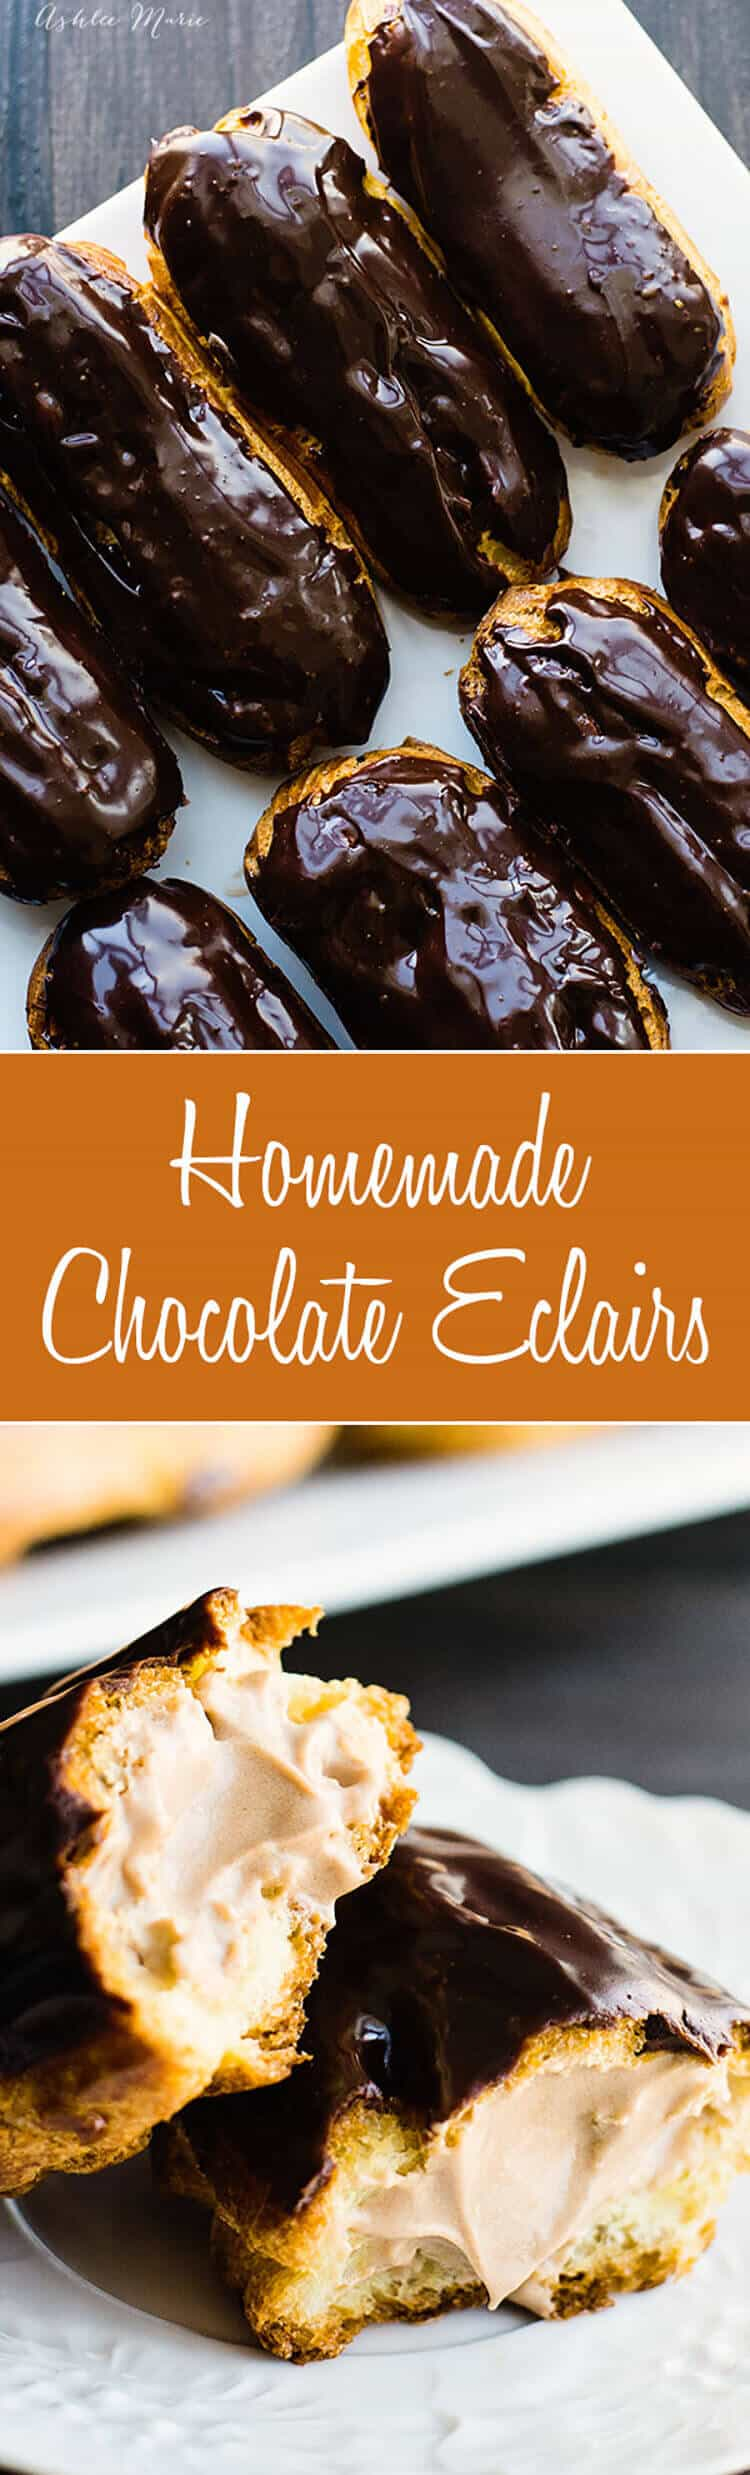 Chocolate Eclairs Recipe and Video tutorial | Ashlee Marie